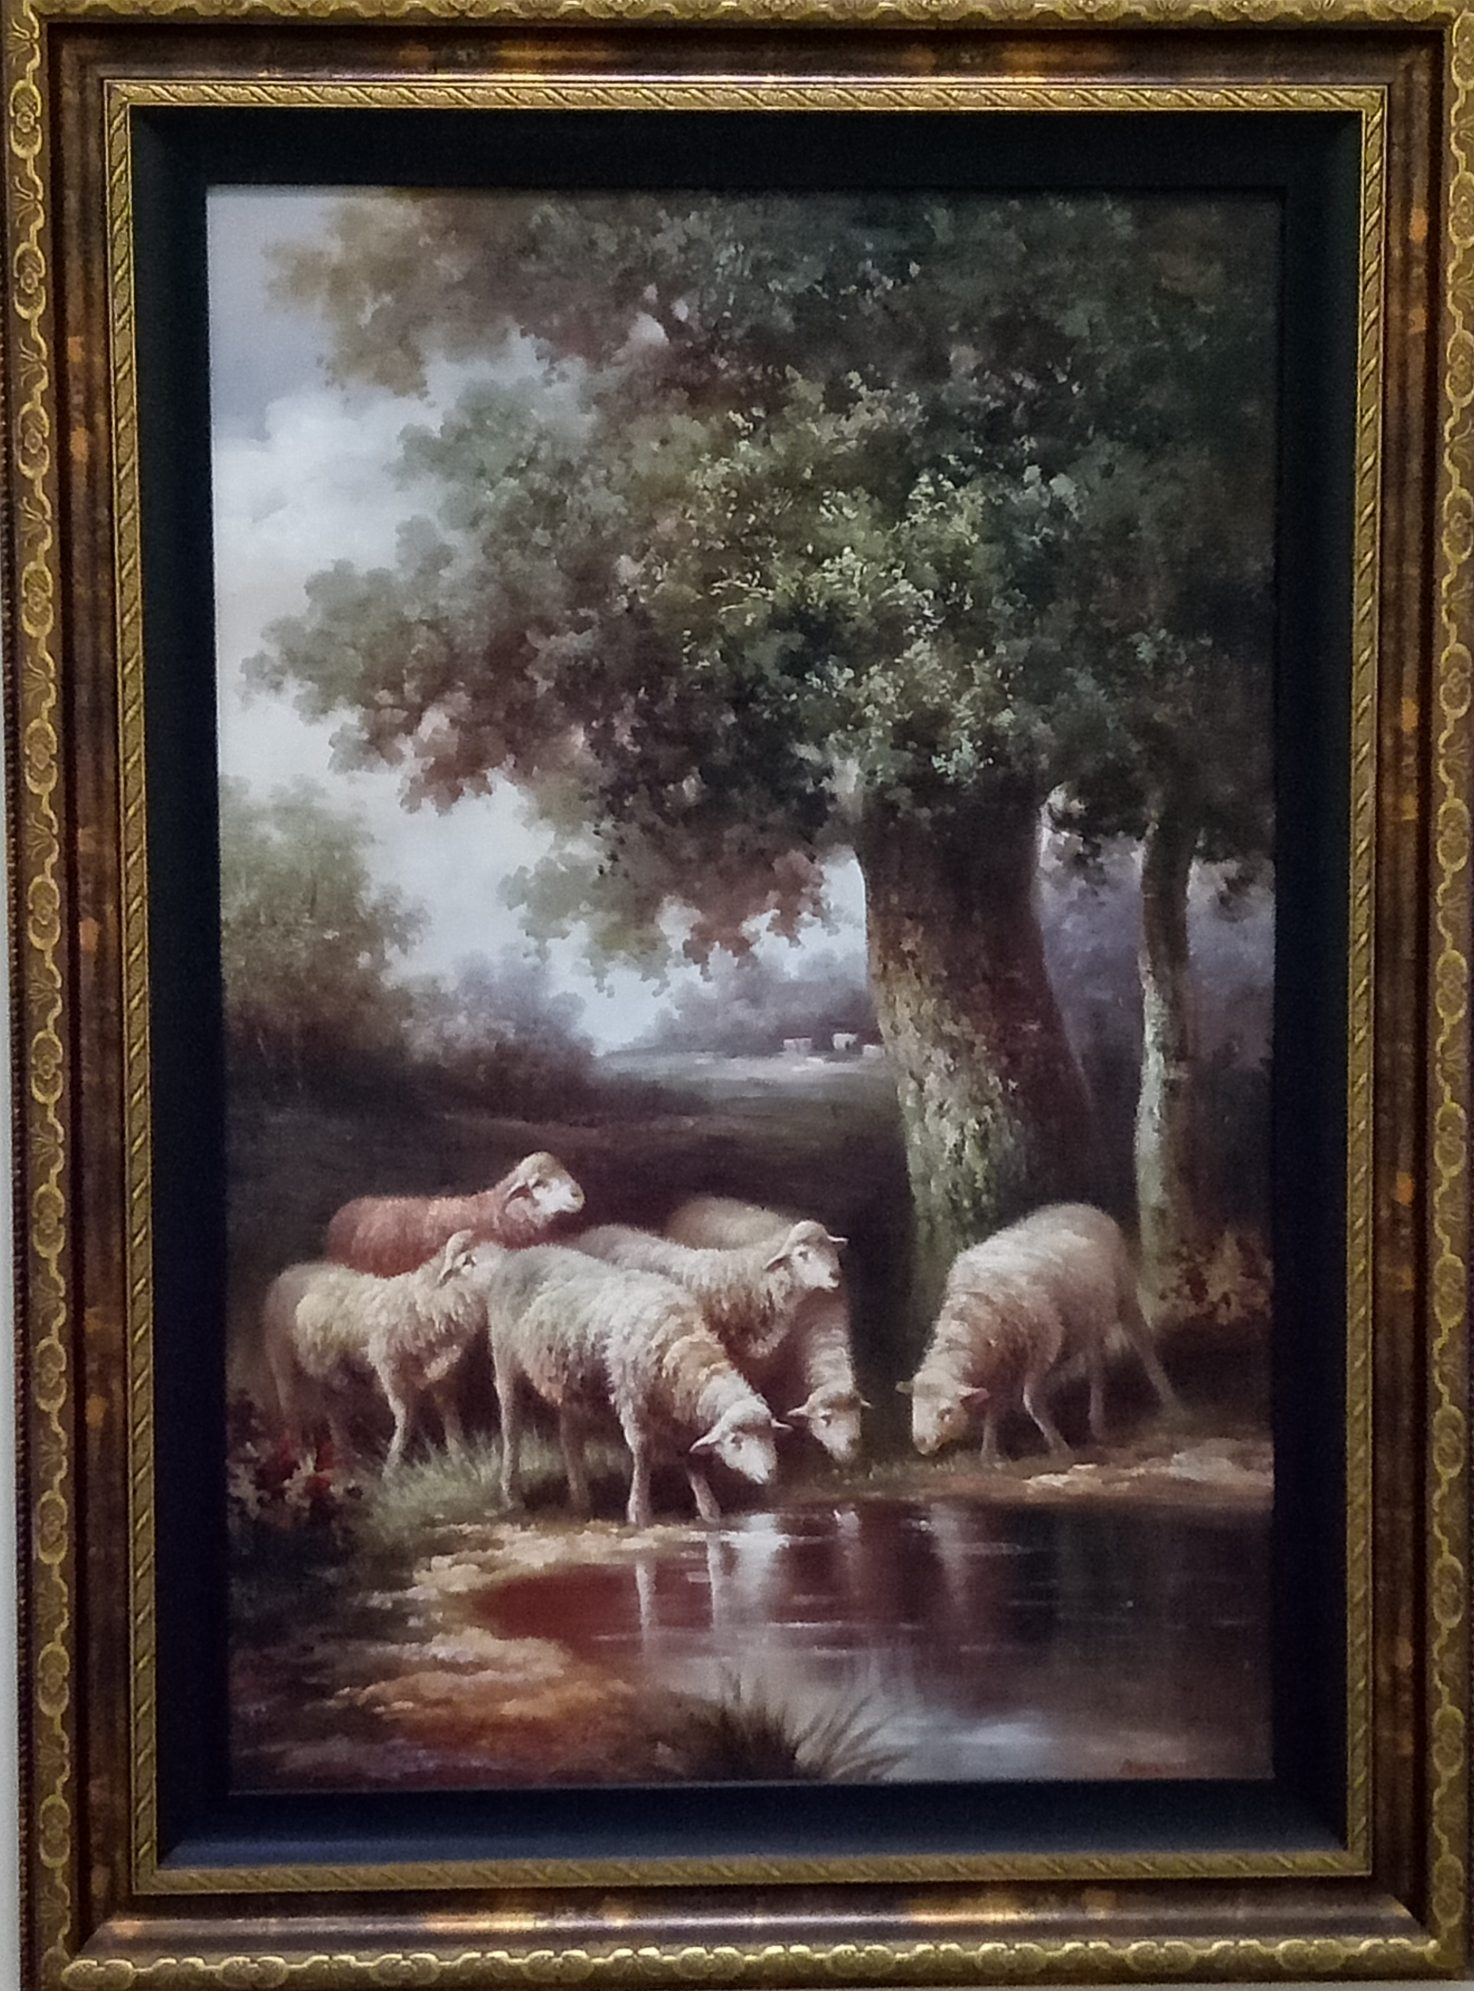 The Lambs , Artist: Manson (a Chinese artist), oil on canvas.